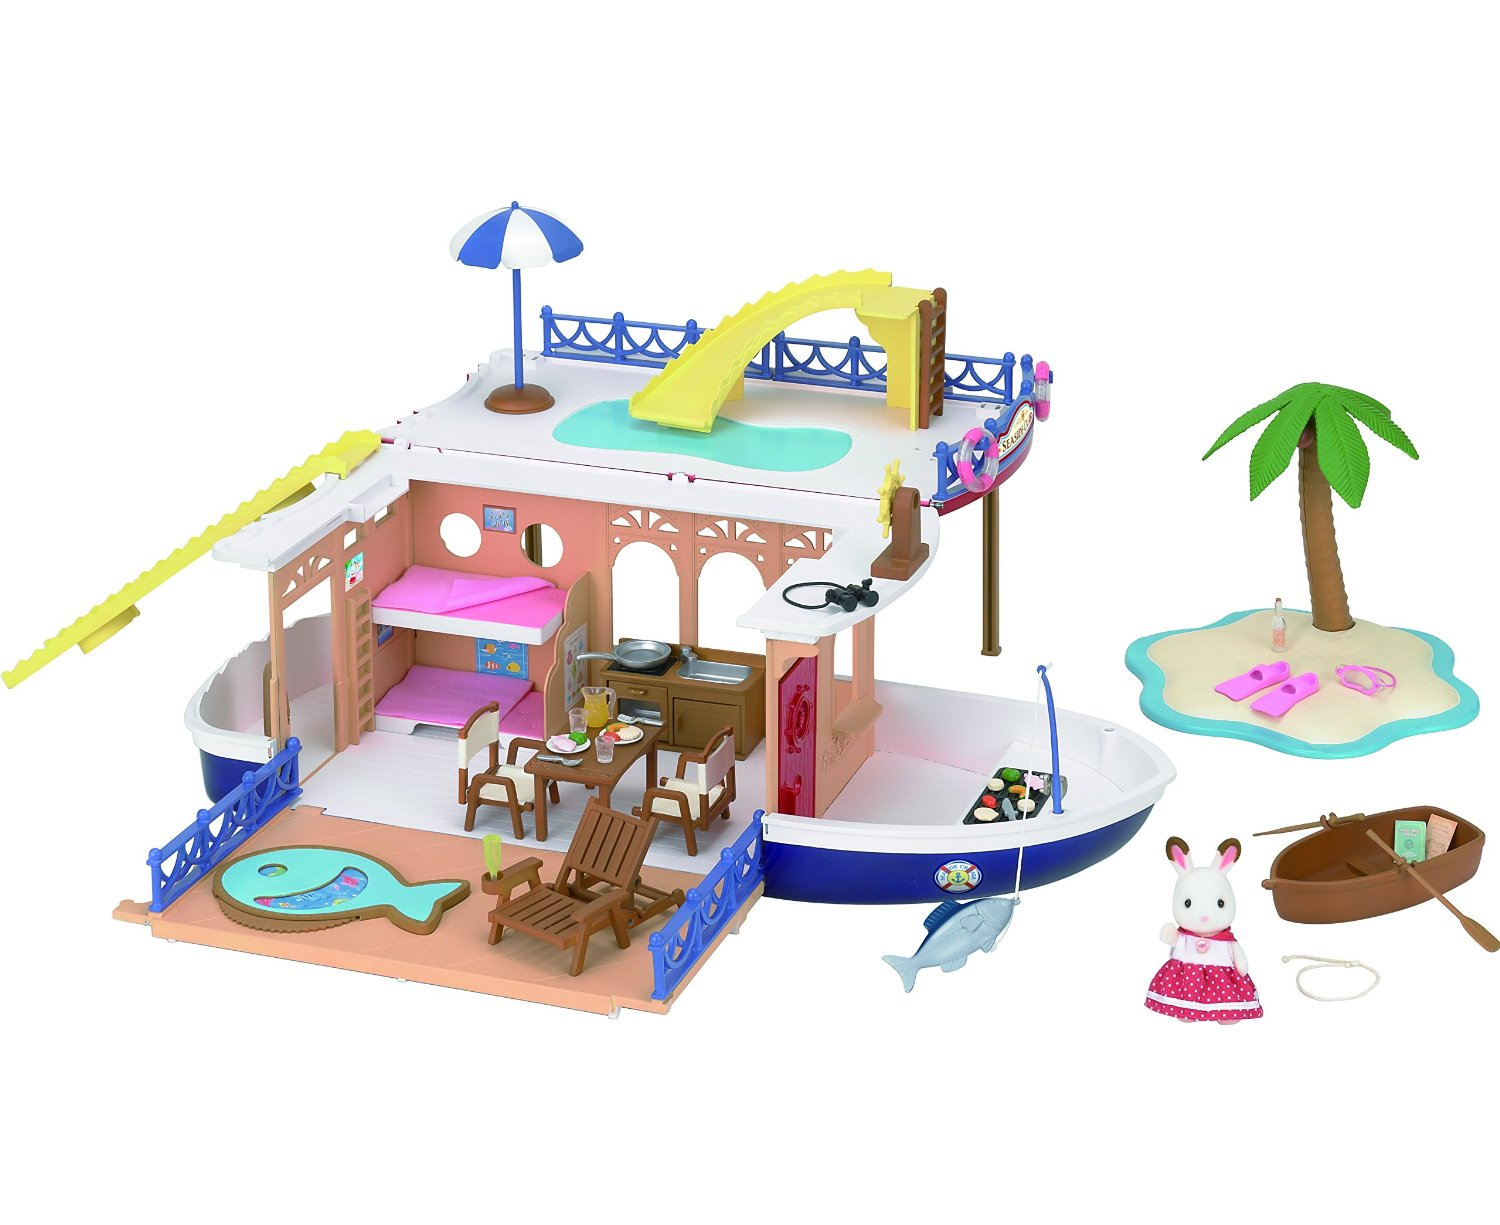 Epoch Sylvanian Families Calico Critters Furniture Only